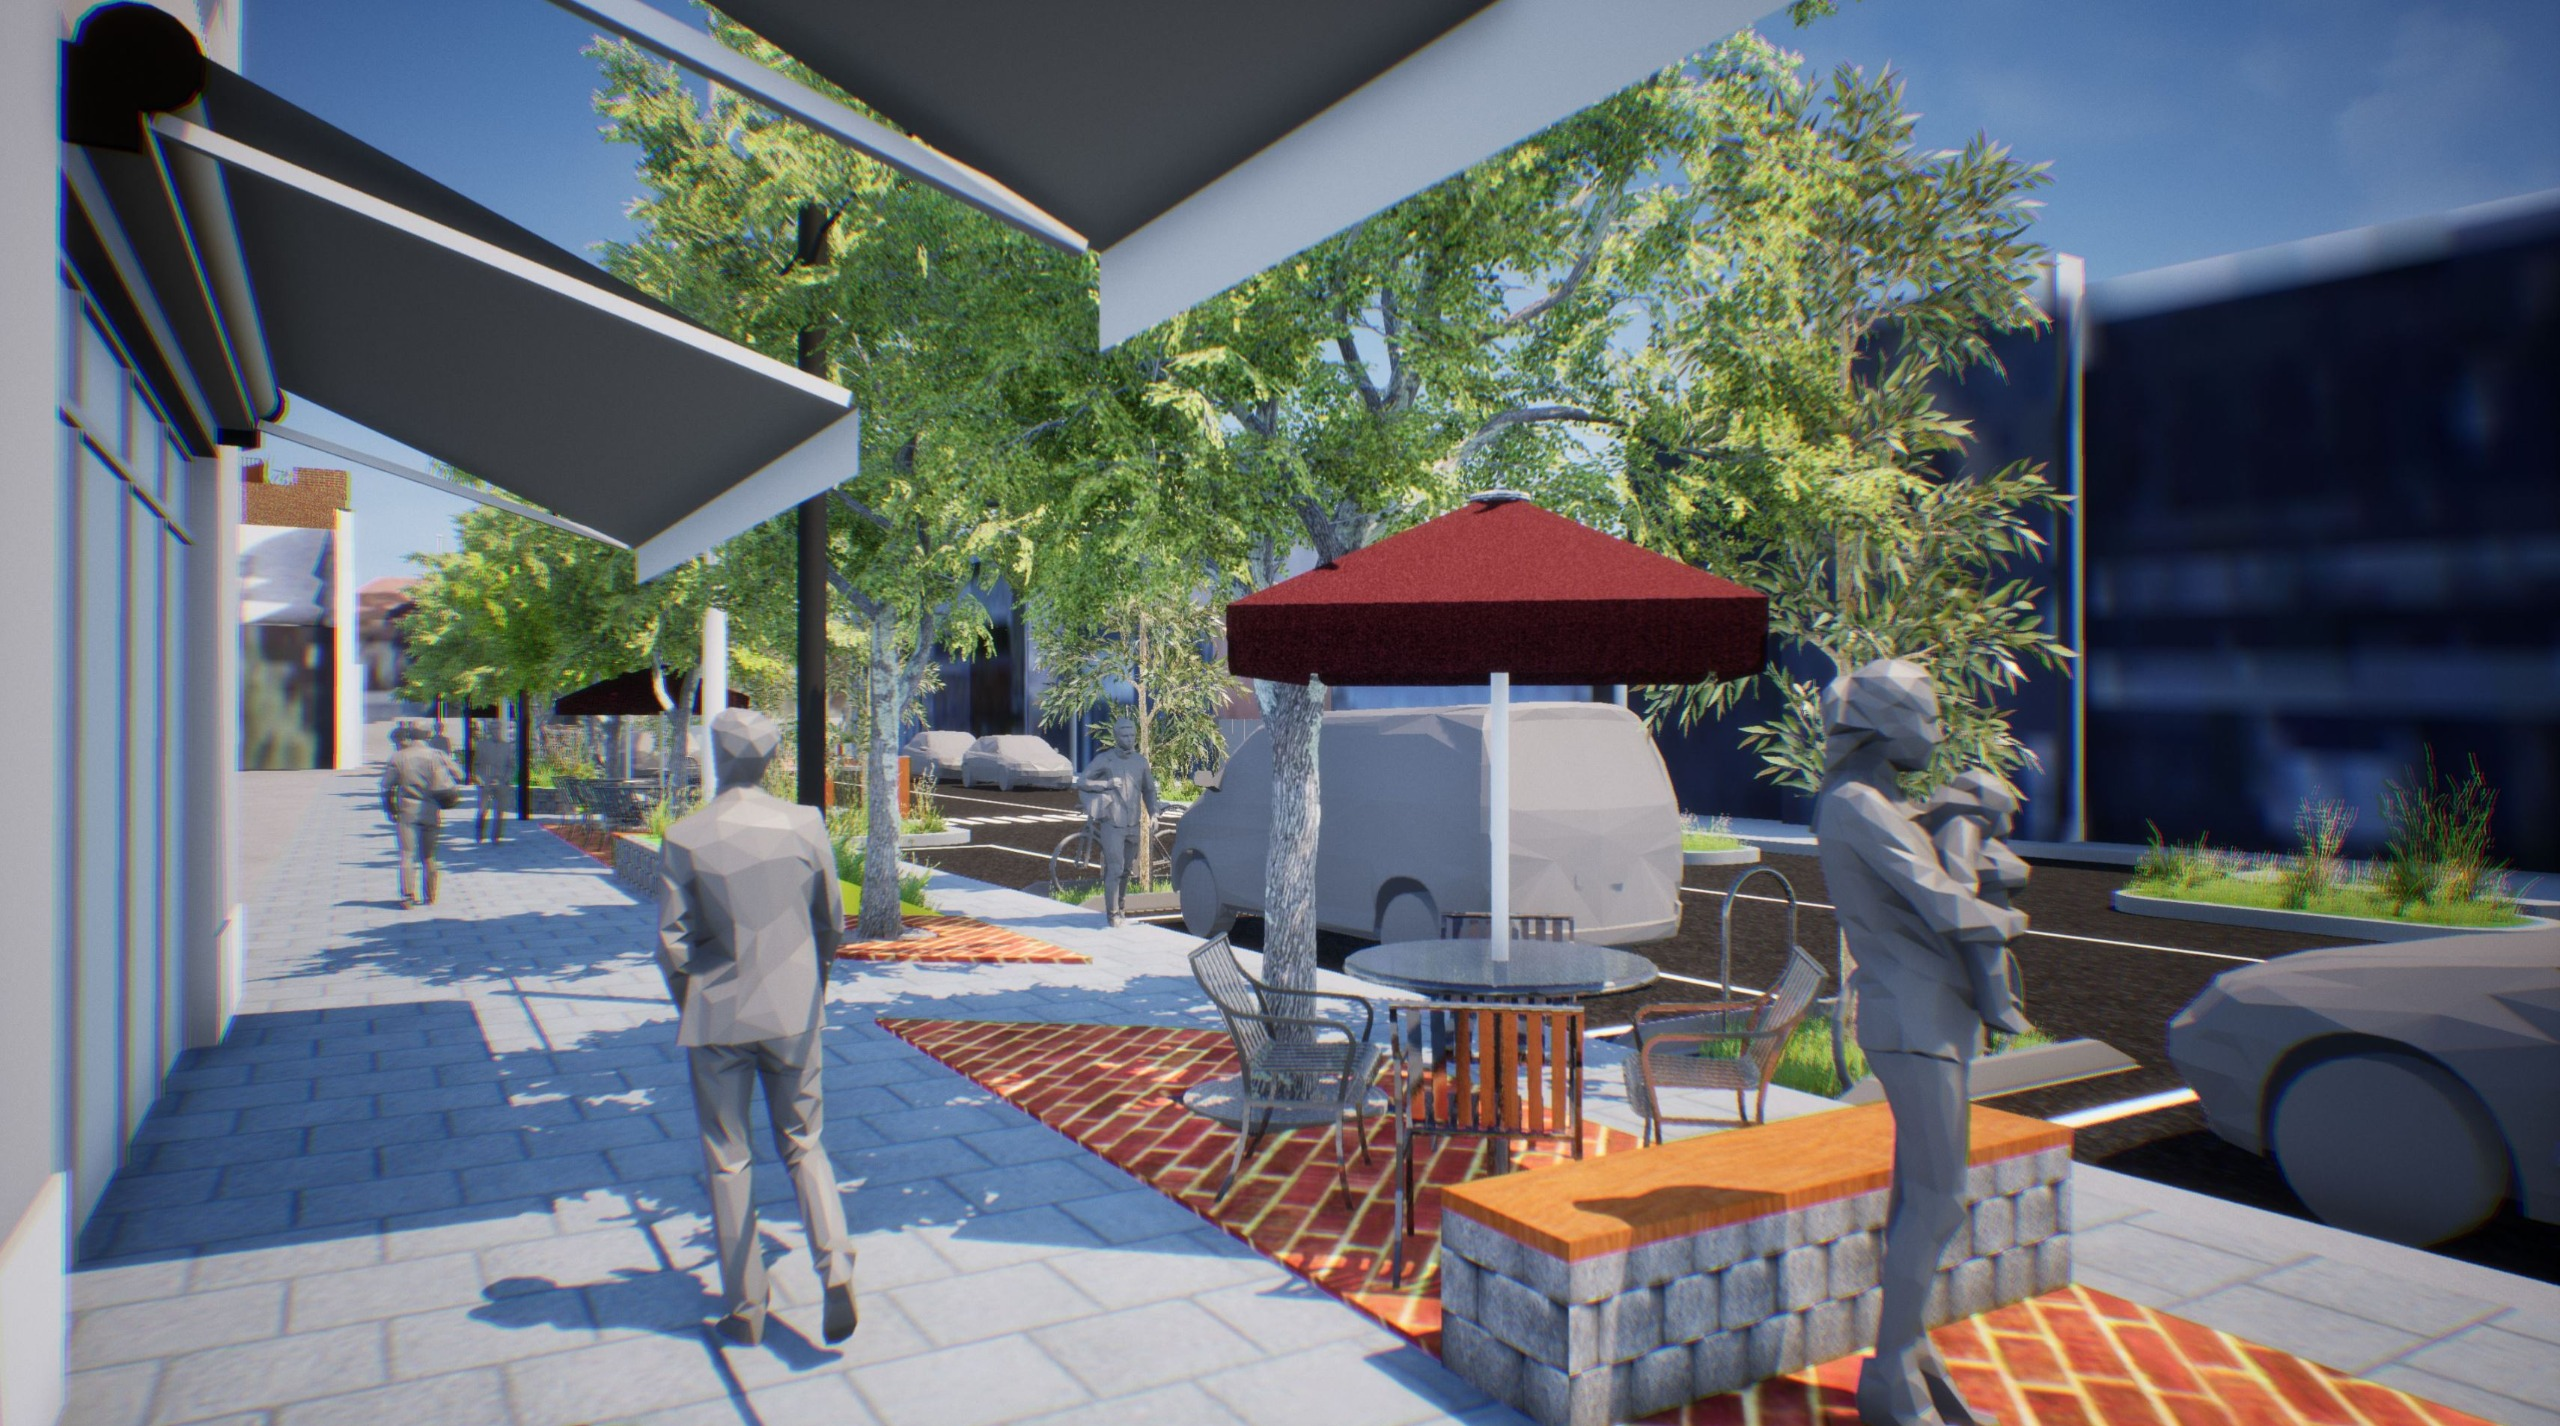 Outdoor dining area & public seating